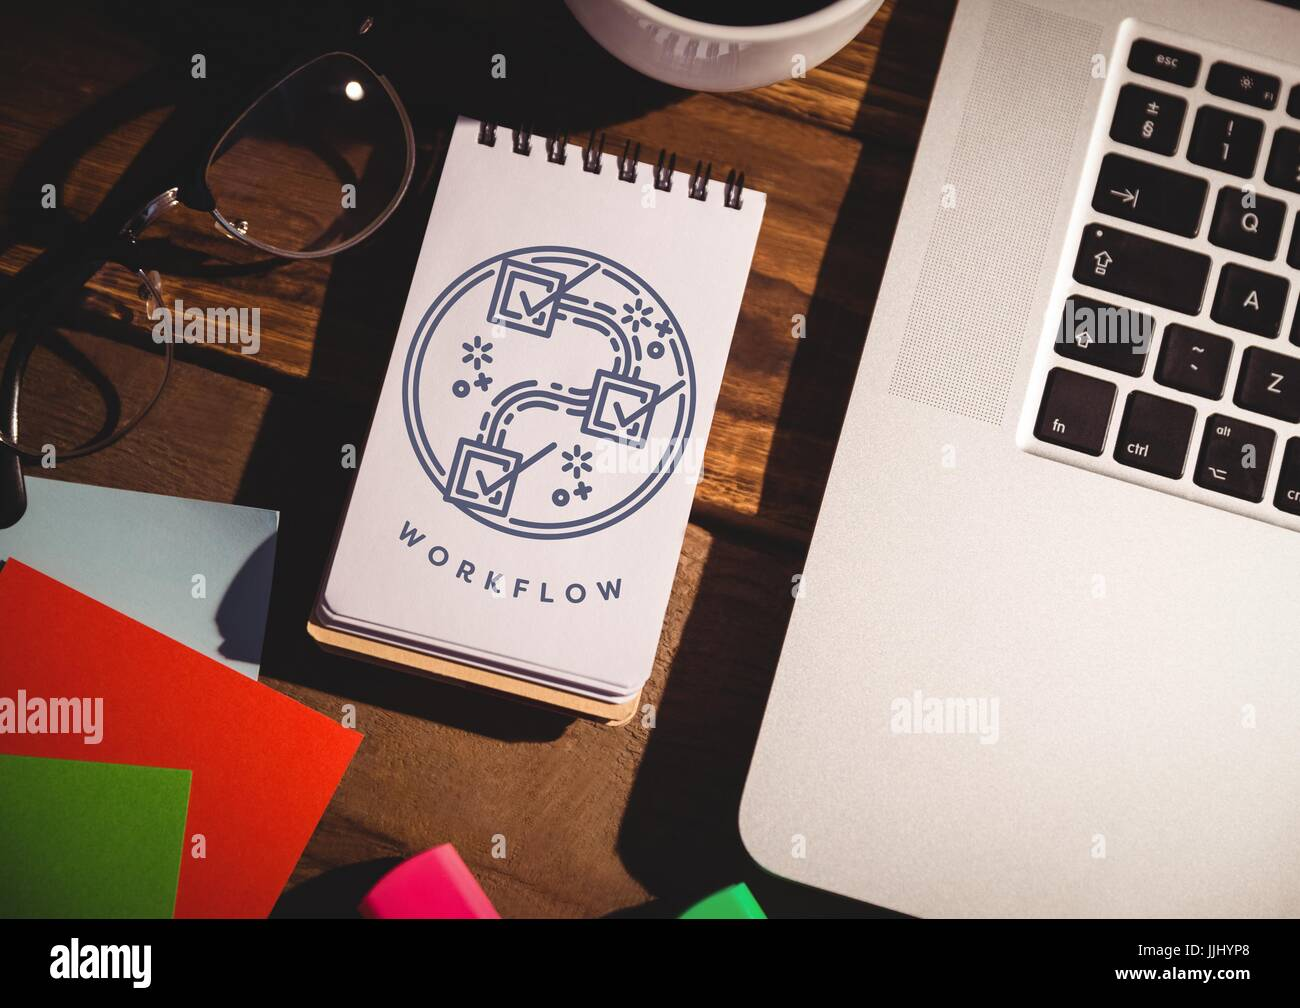 Navy workflow graphic on notepad next to laptop and glasses - Stock Image